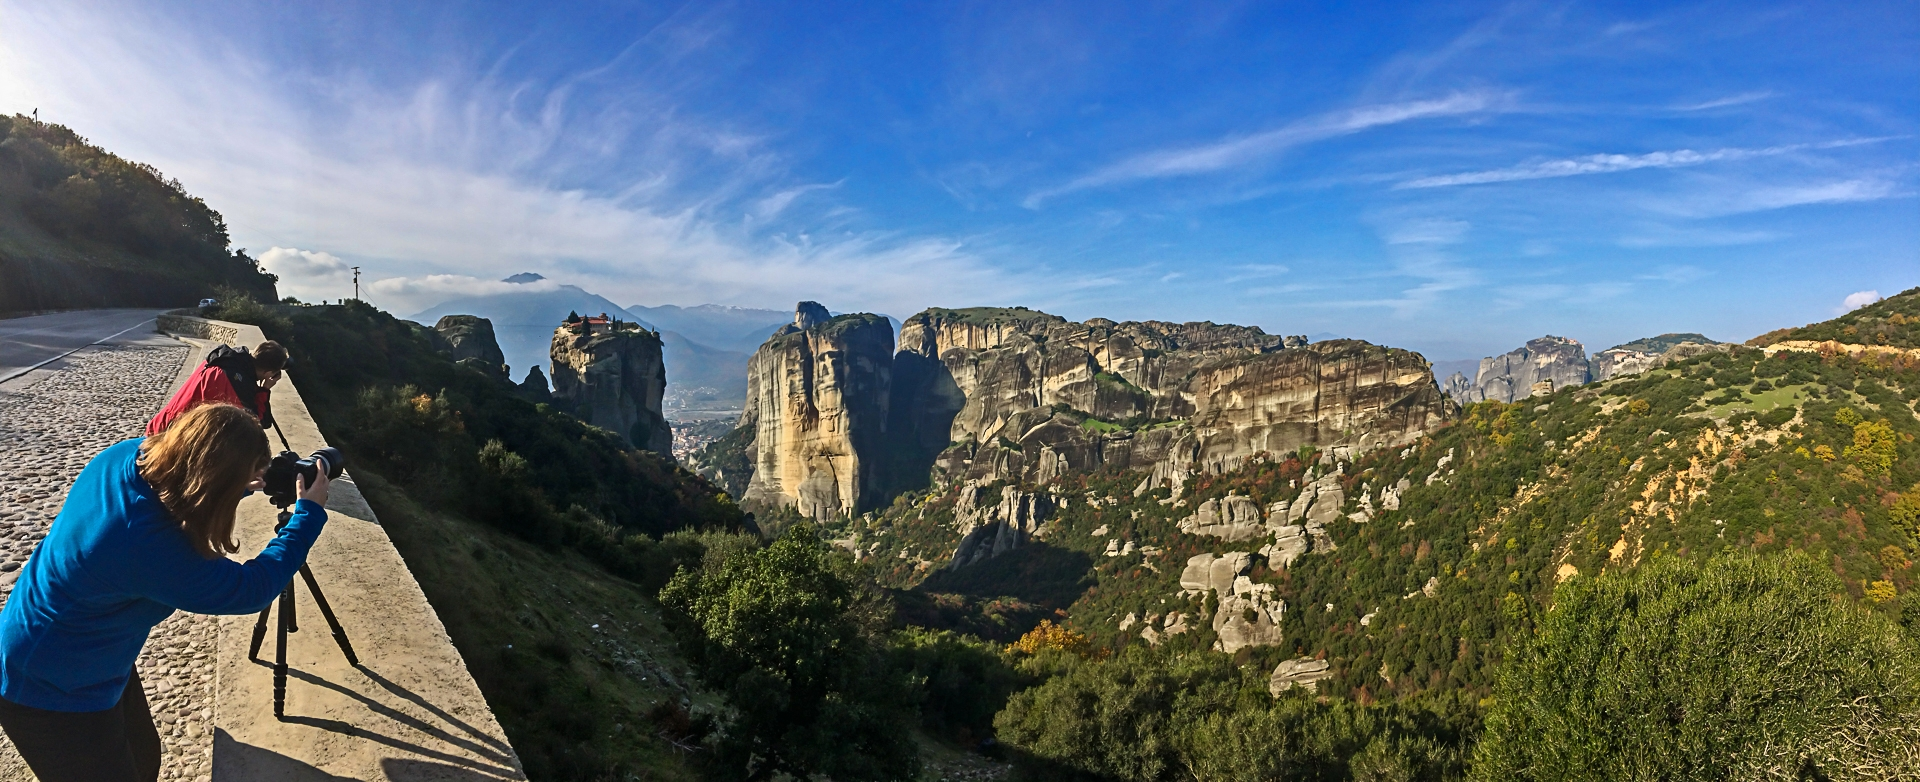 Another panoramic taken this time on my own iPhone.. Tam & Ciaran photographing one of the monasteries of the Meteora perched seemingly impossibly on a dolomite.. during our Landscape Photography workshop to Meteora and Pindos mountains in Greece, 2016;